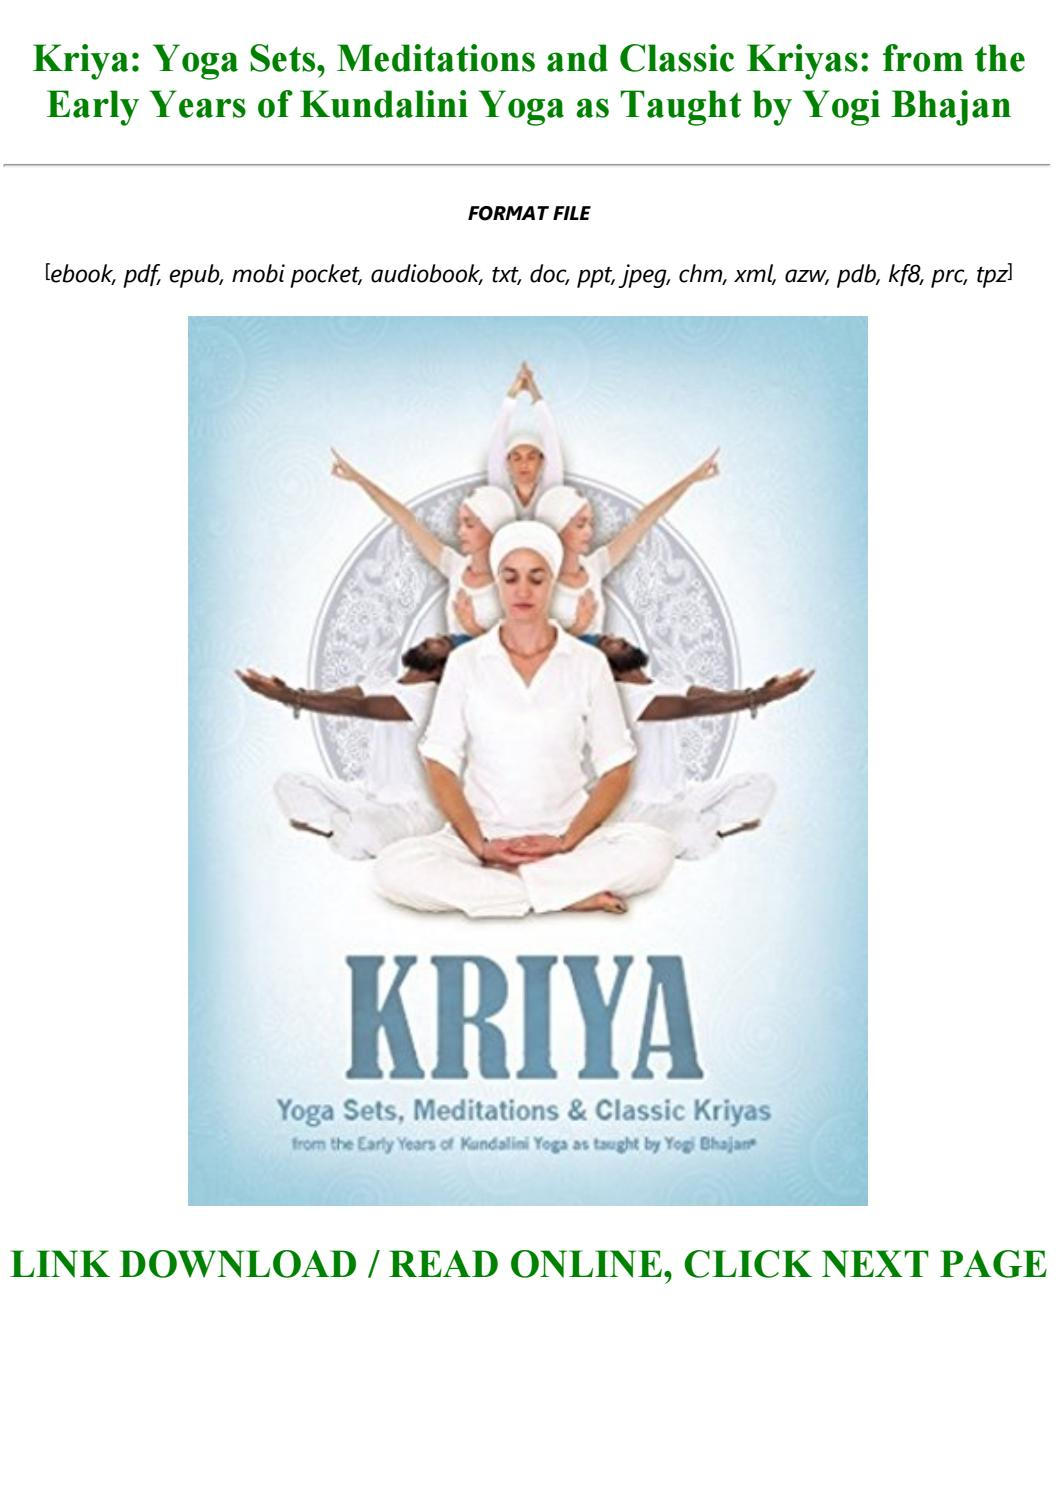 Kriya Yoga Sets Meditations And Classic Kriyas From The Early Years Of Kundalini Yoga As Taught By Calvin4545 Issuu